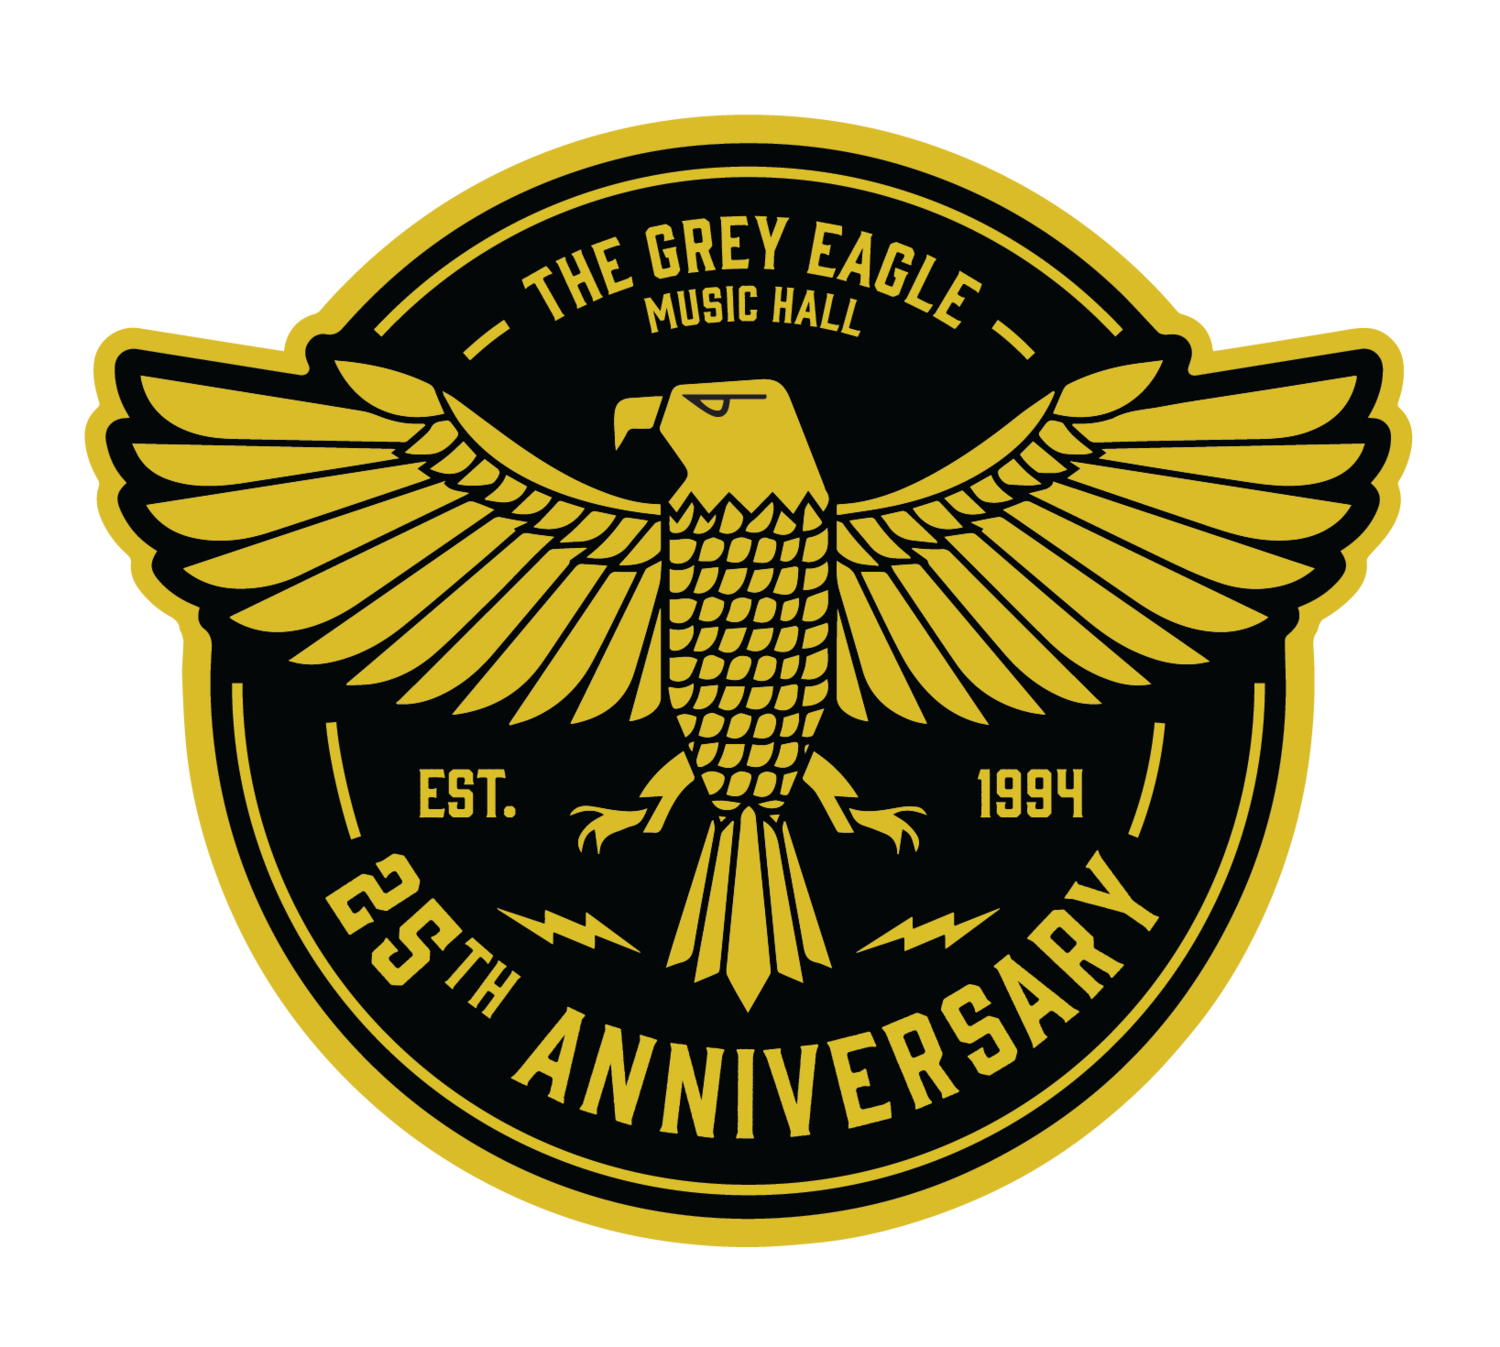 The Grey Eagle 25th Anniversary